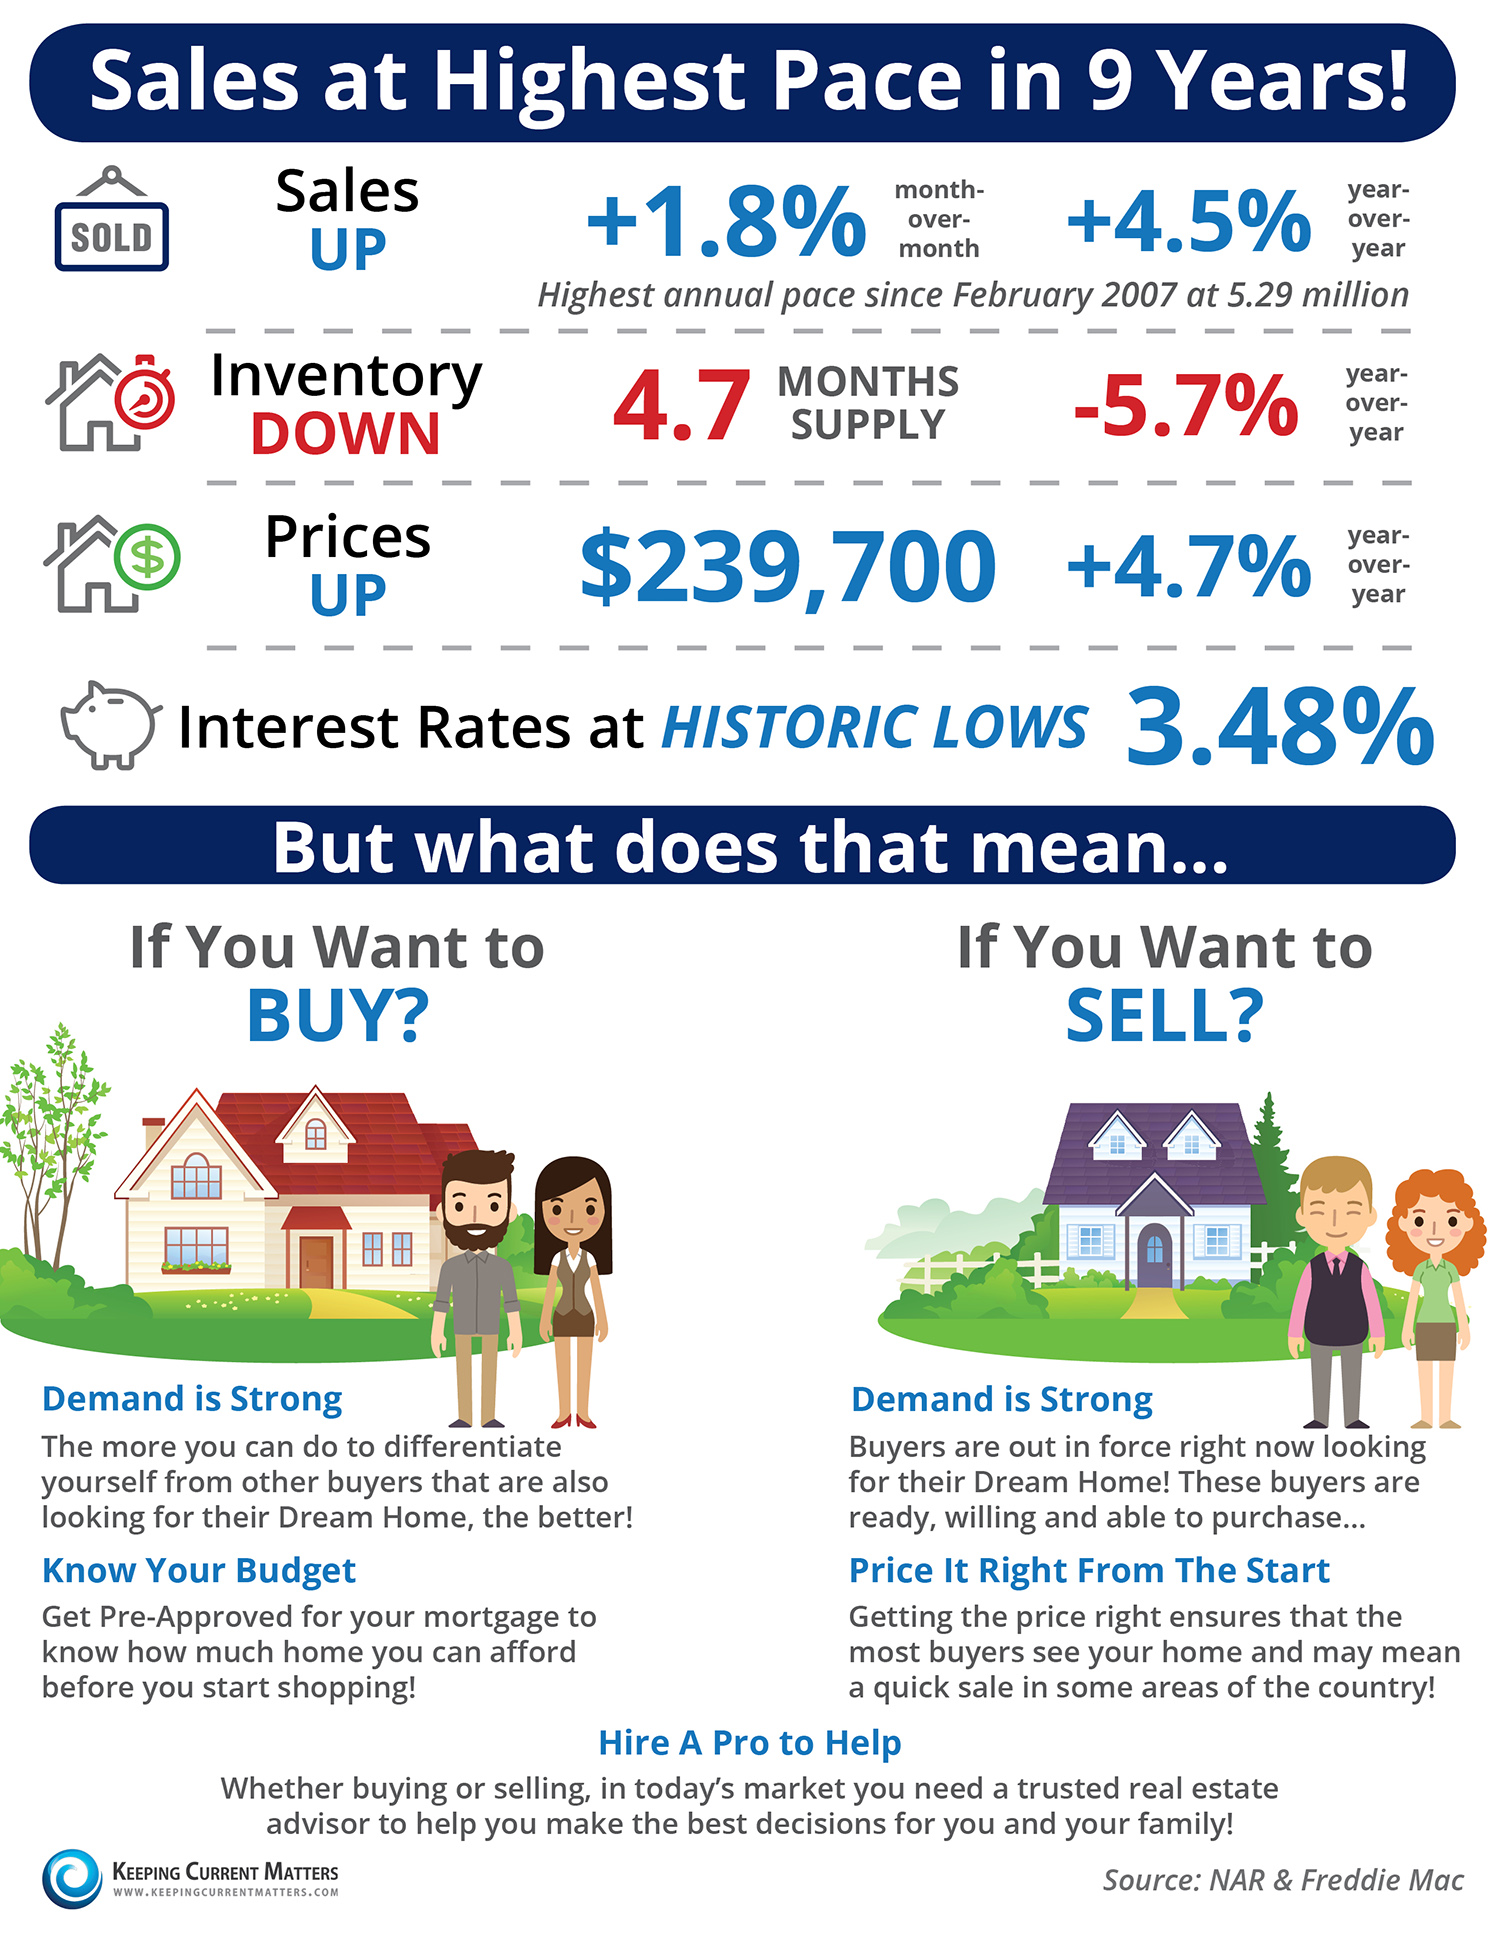 Sales at Highest Pace in 9 Years [INFOGRAPHIC] | Keeping Current Matters